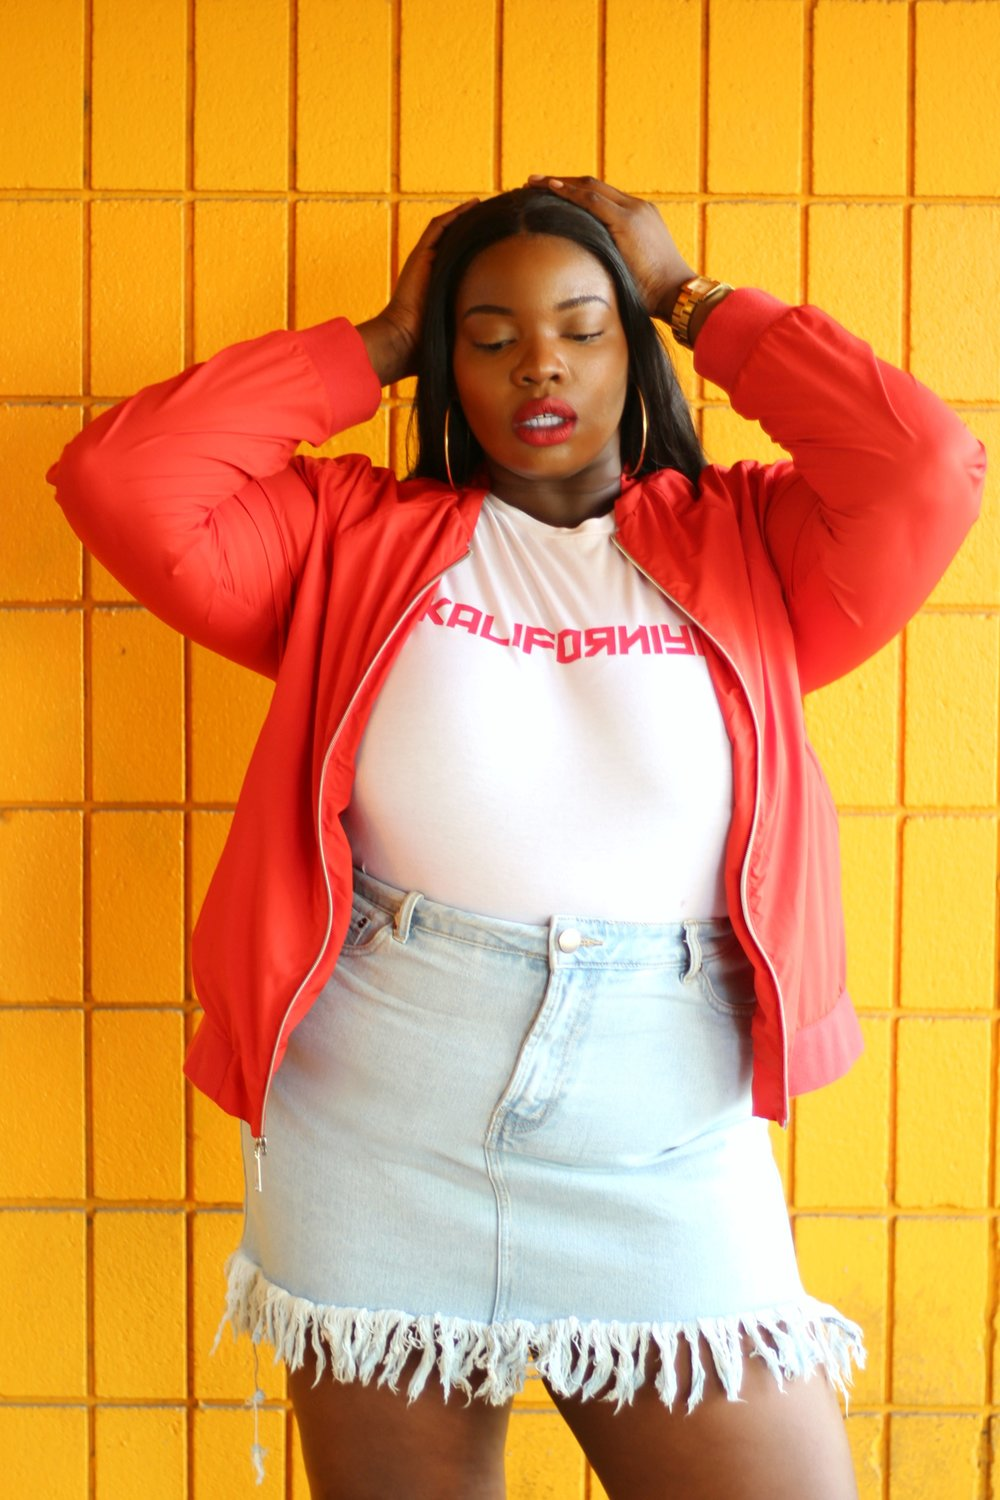 BORN IN KALI/CALI - I'm a 90's baby, born in Southern California, raised in Lagos, so yes I had to buy this tee (Shop HERE). Check out some of my favorite plus size graphic t-shirt designs below. The red bomber jacket is thrifted, but you can find a similar style on ASOS - Click HERE.